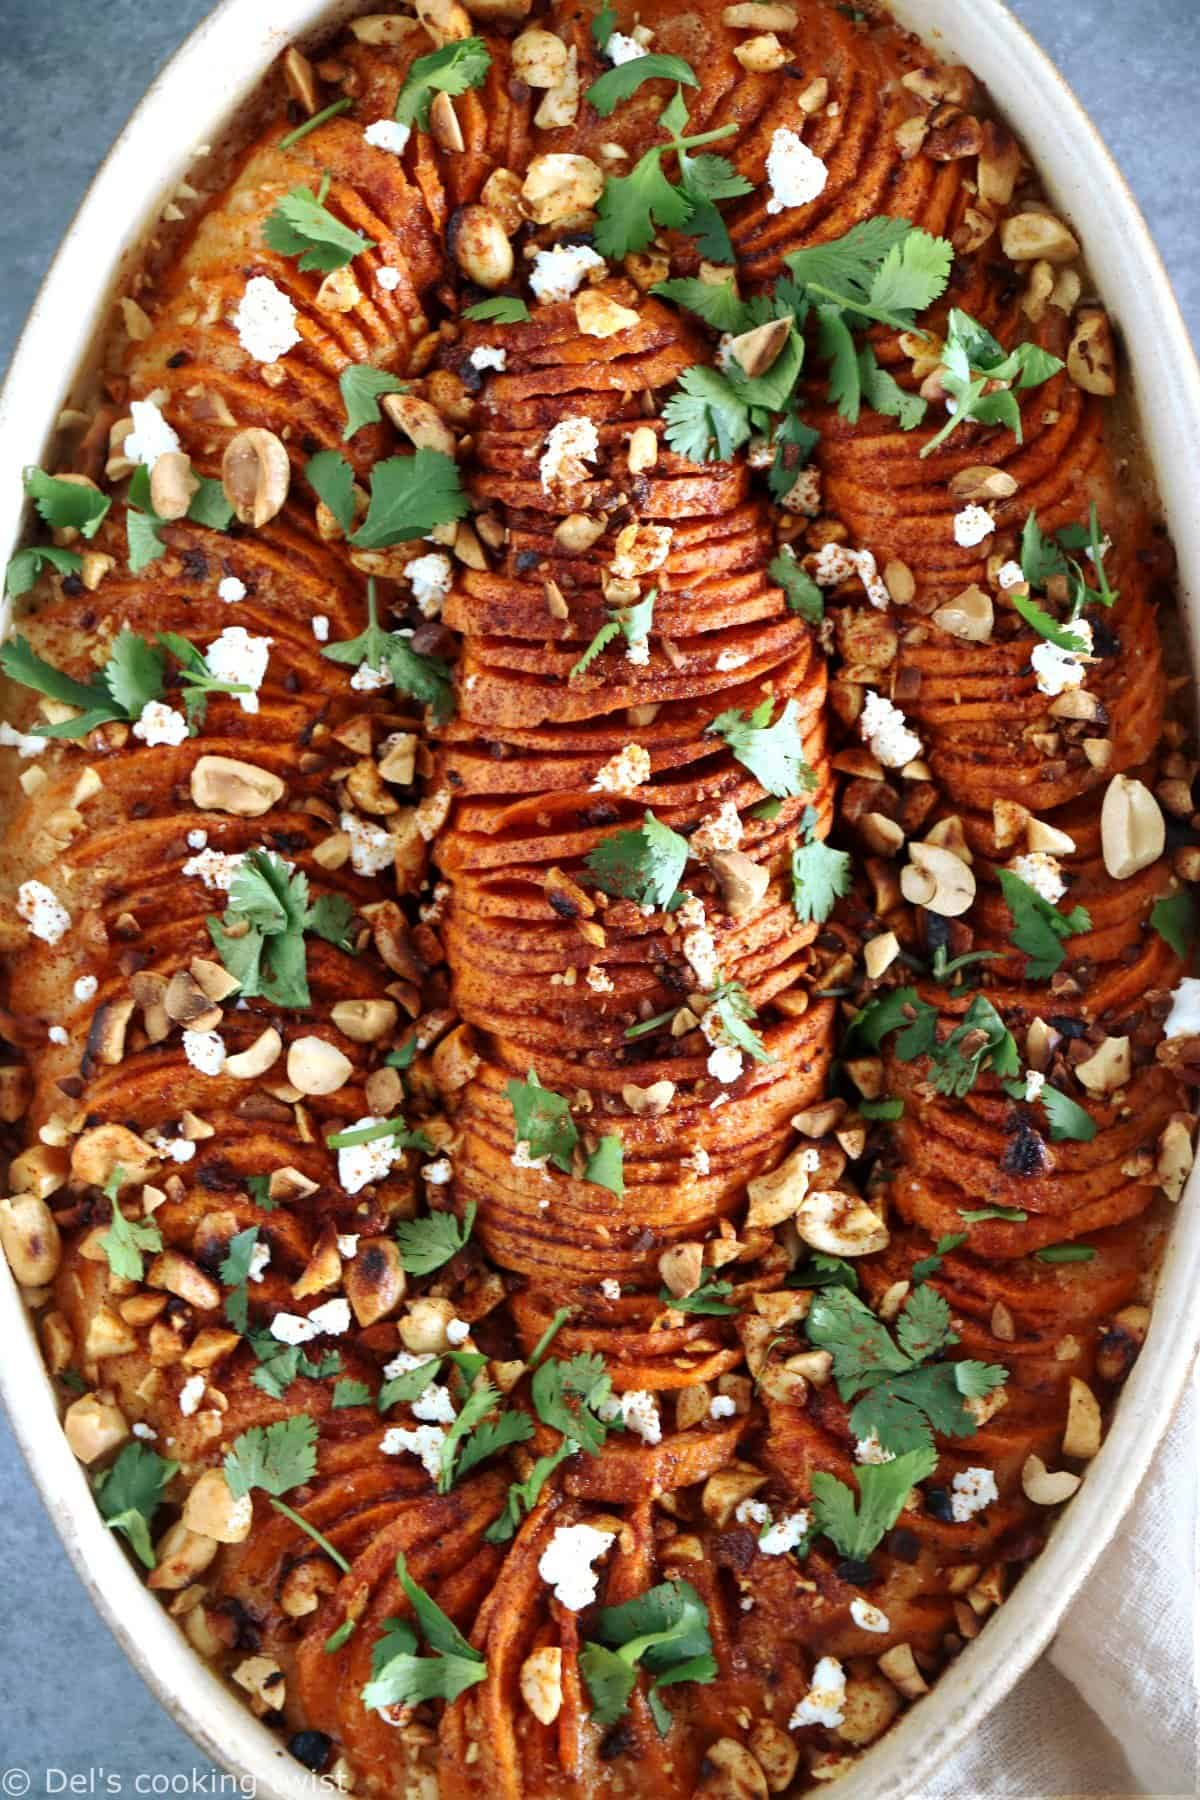 Spicy Sweet Potato and Peanut Butter Gratin